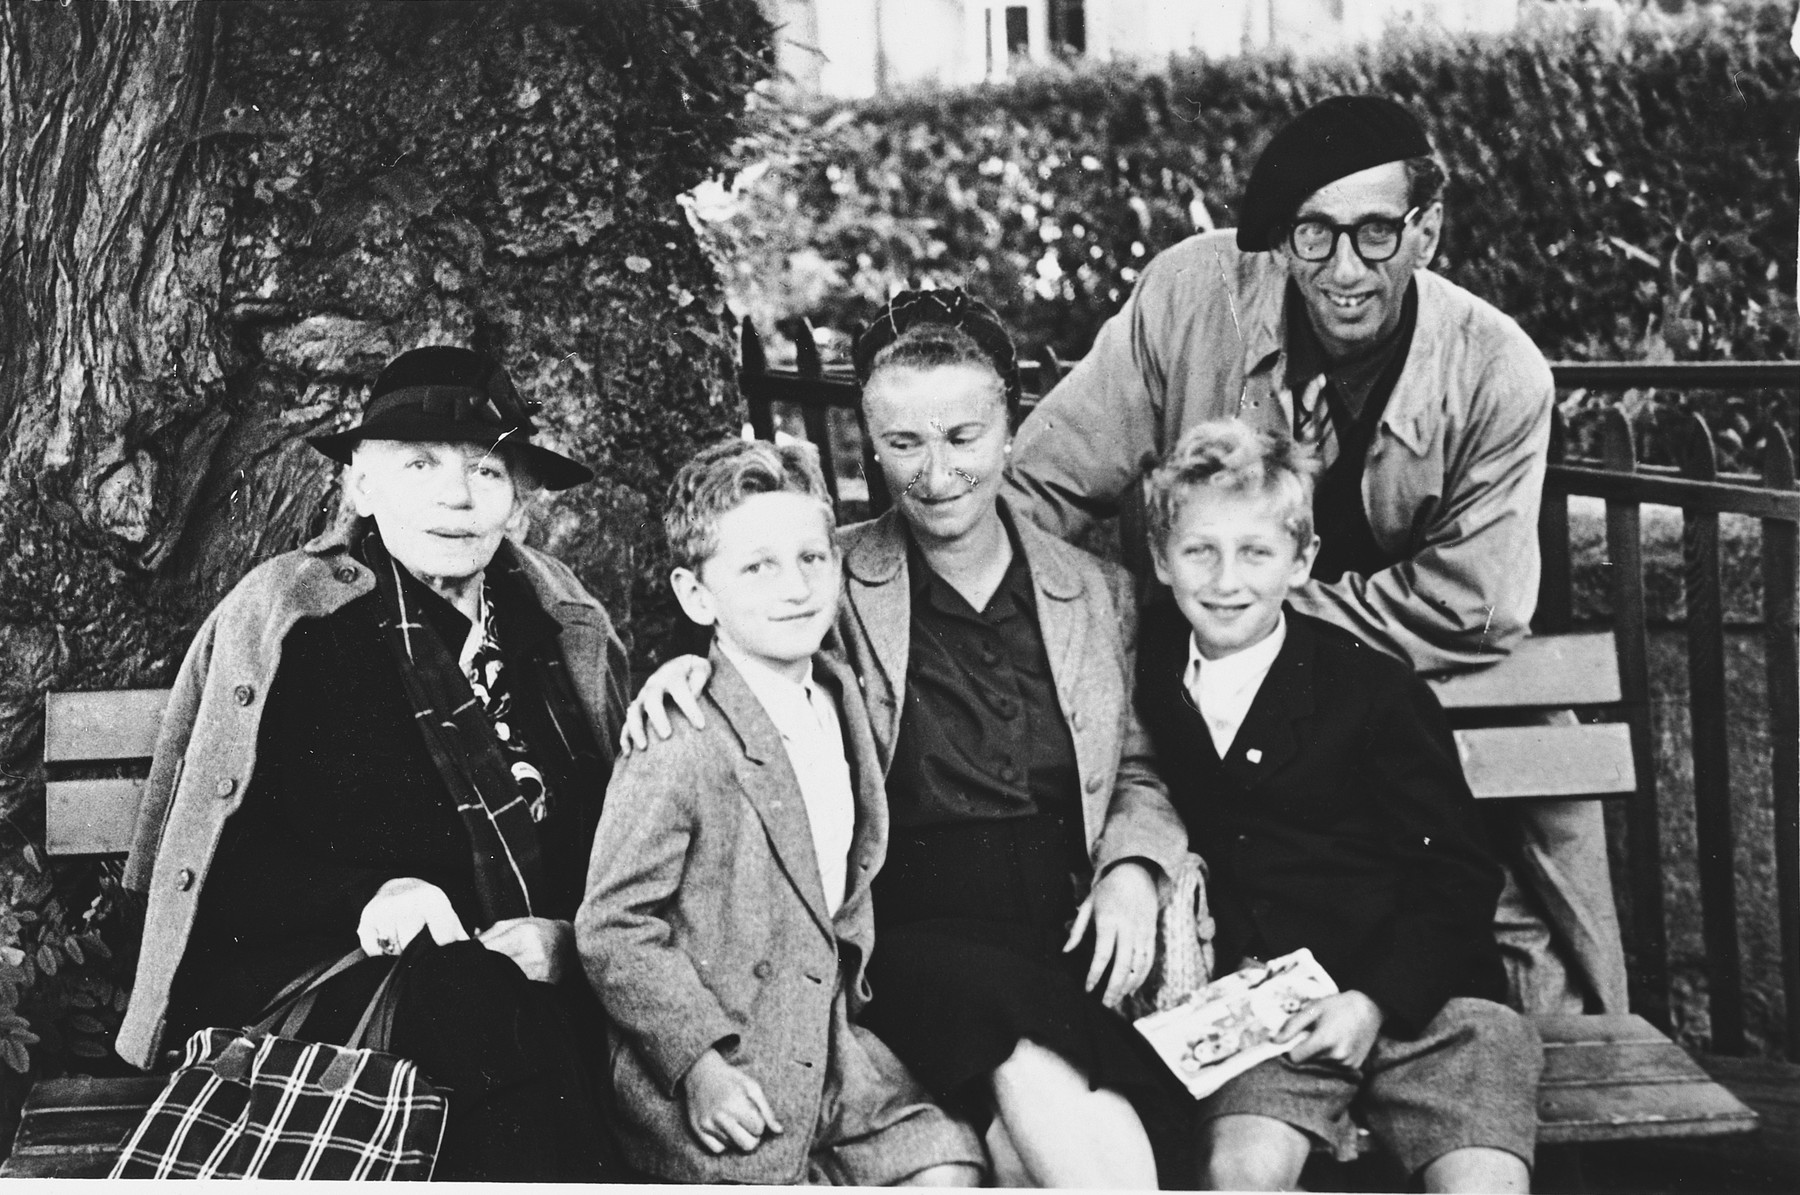 Group portrait of a Jewish refugee family seated on a park bench in Geneva.  From left to right are Renate Hirsch, Claude, Ines Walter and Andre Limot.